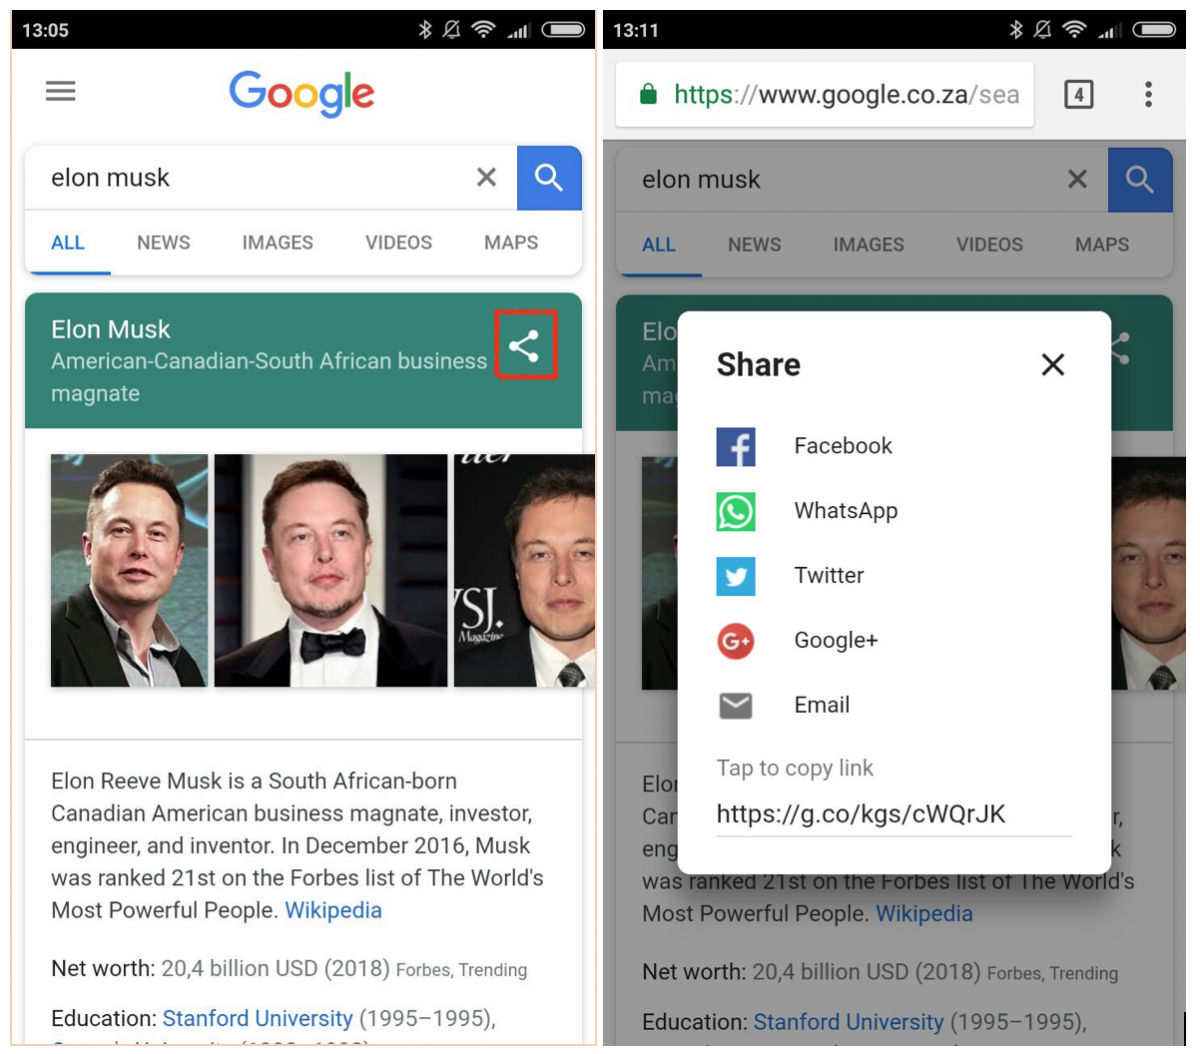 This screenshot shows that Google now aggregates the results and has enabled sharing it.